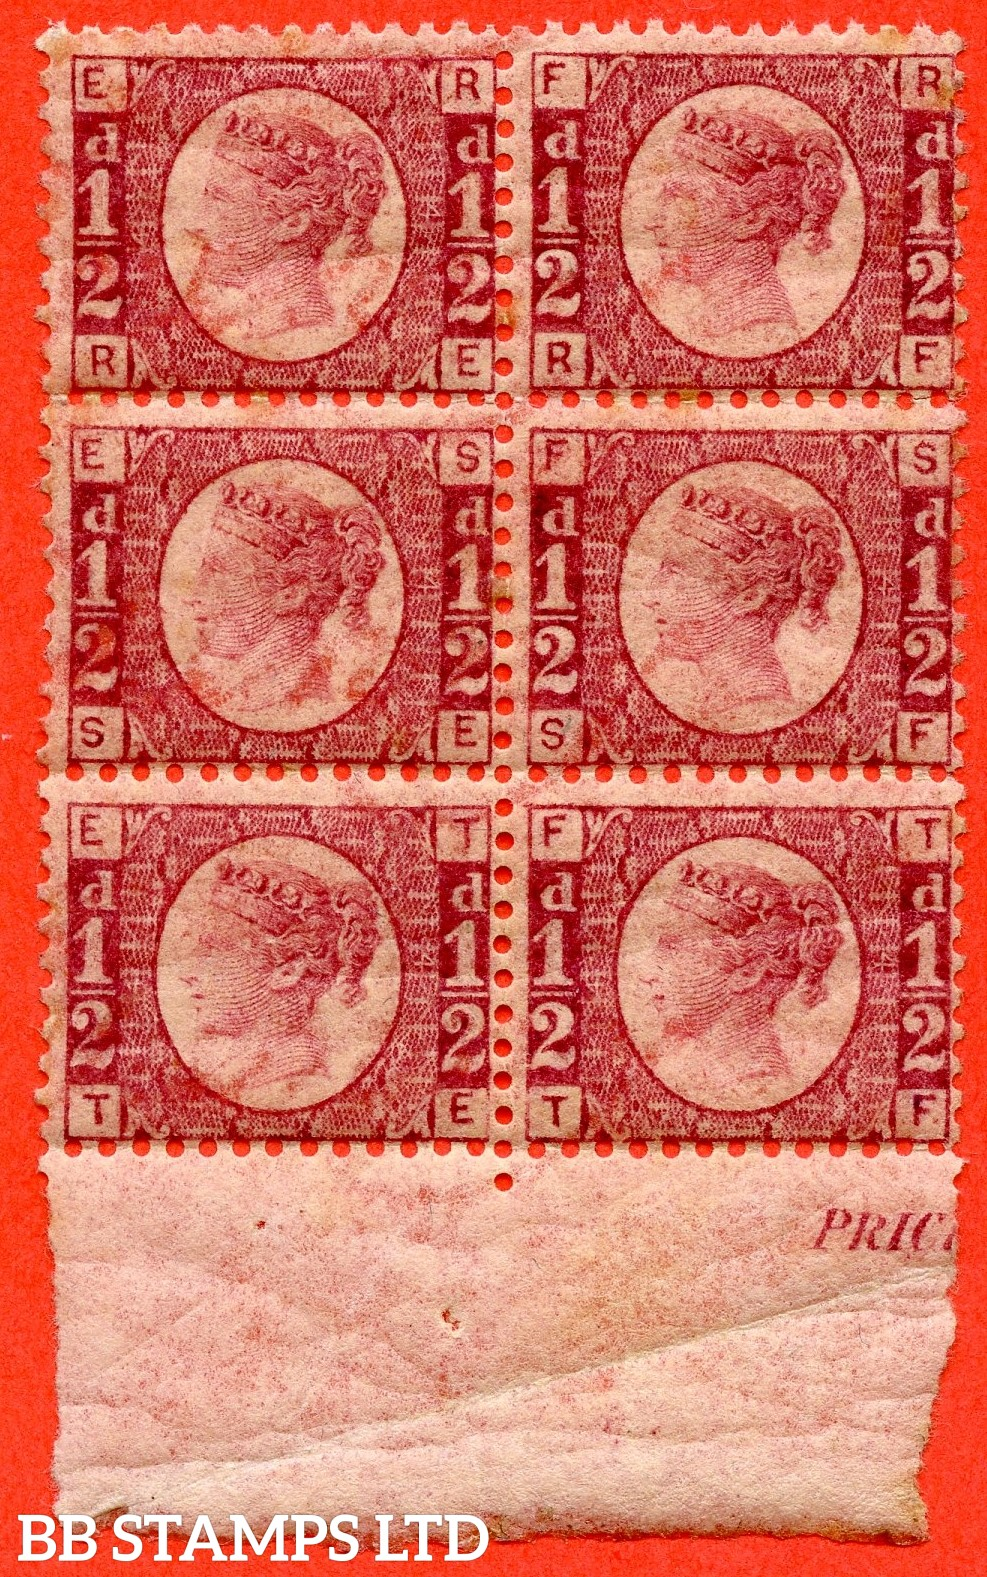 "SG. 48/49. G4. "" RE RF SE SF TE TF "". ½d rose - red plate 4 . A fine UNMOUNTED MINT bottom marginal block of 6."